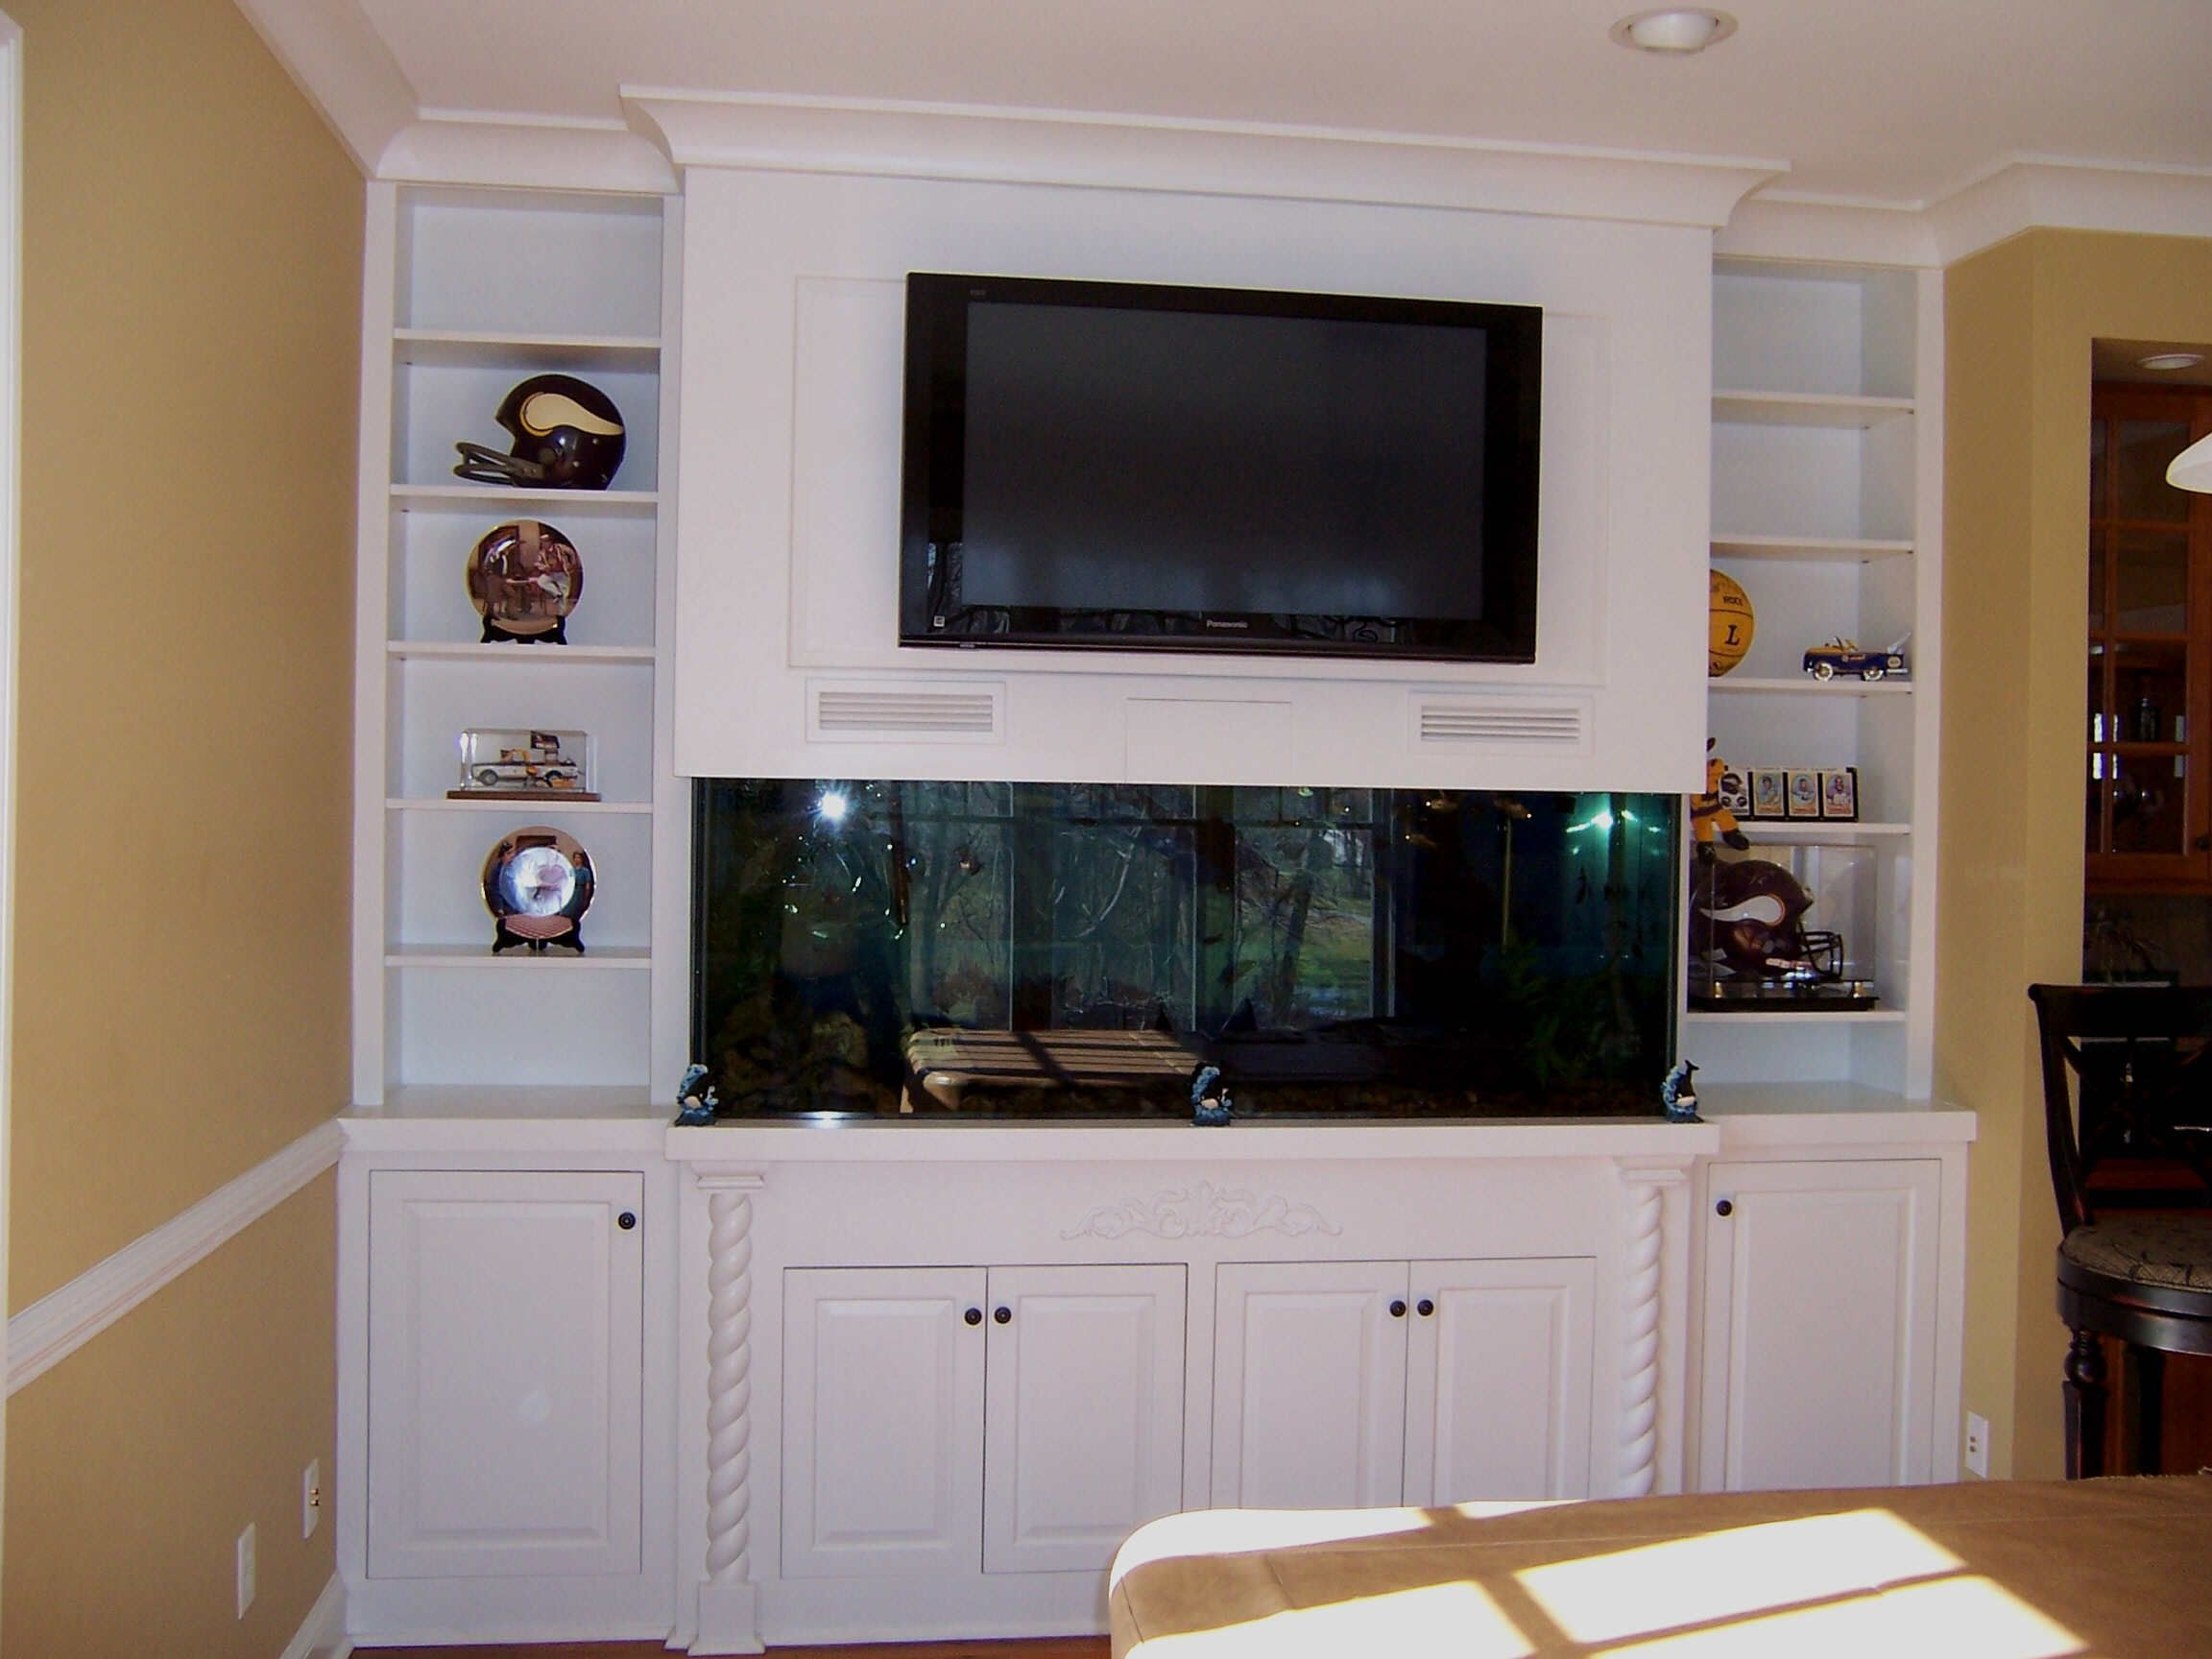 Built In Entertainment Center Design Ideas custombuiltentertainmentcenters large custom built in entertainment center Built In Entertainment Center With Aquarium